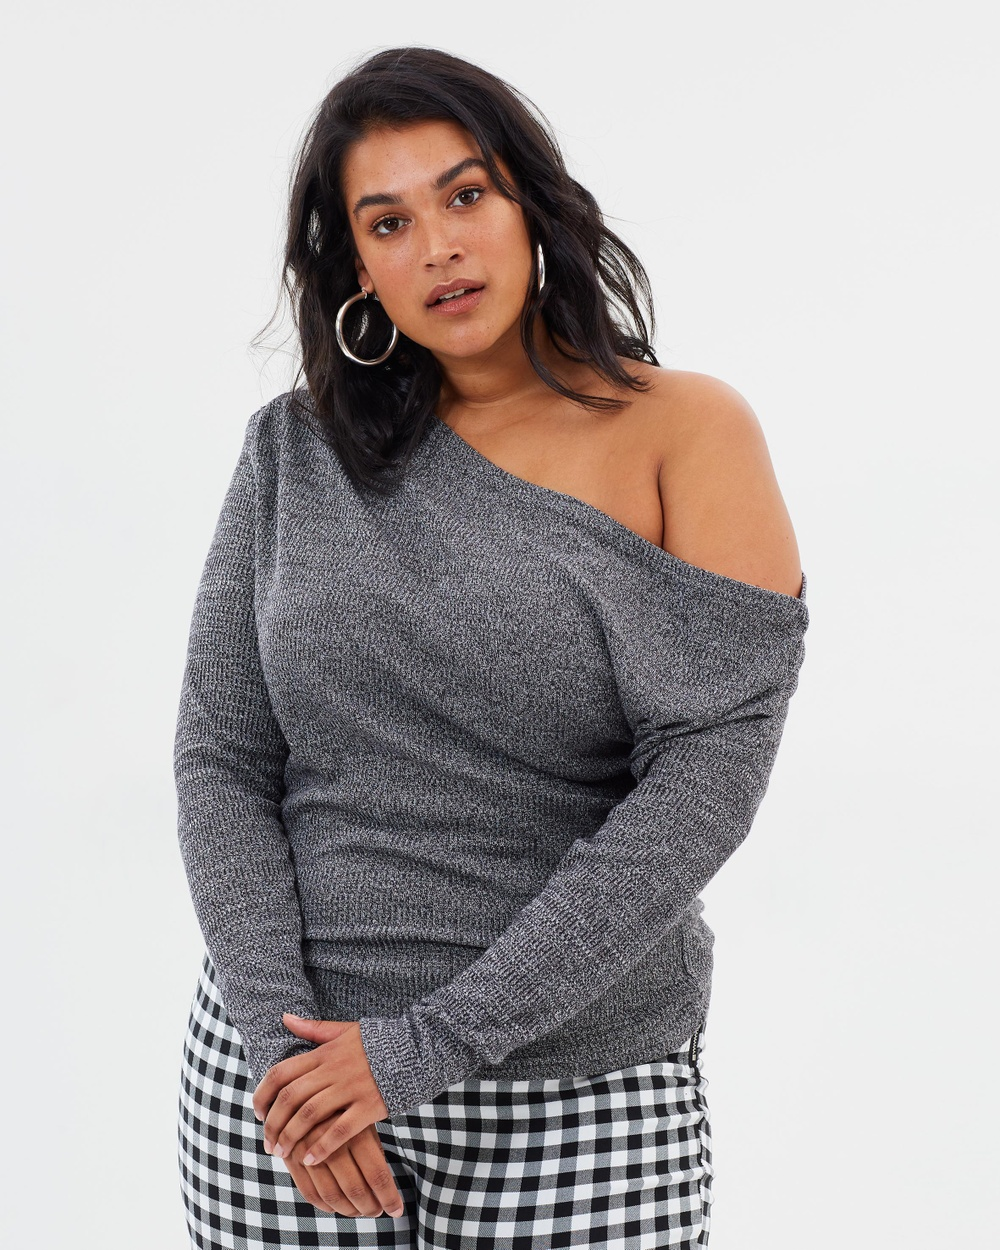 Atmos & Here Curvy ICONIC EXCLUSIVE Kaylee Drape Shoulder Top Tops Charcoal ICONIC EXCLUSIVE Kaylee Drape Shoulder Top